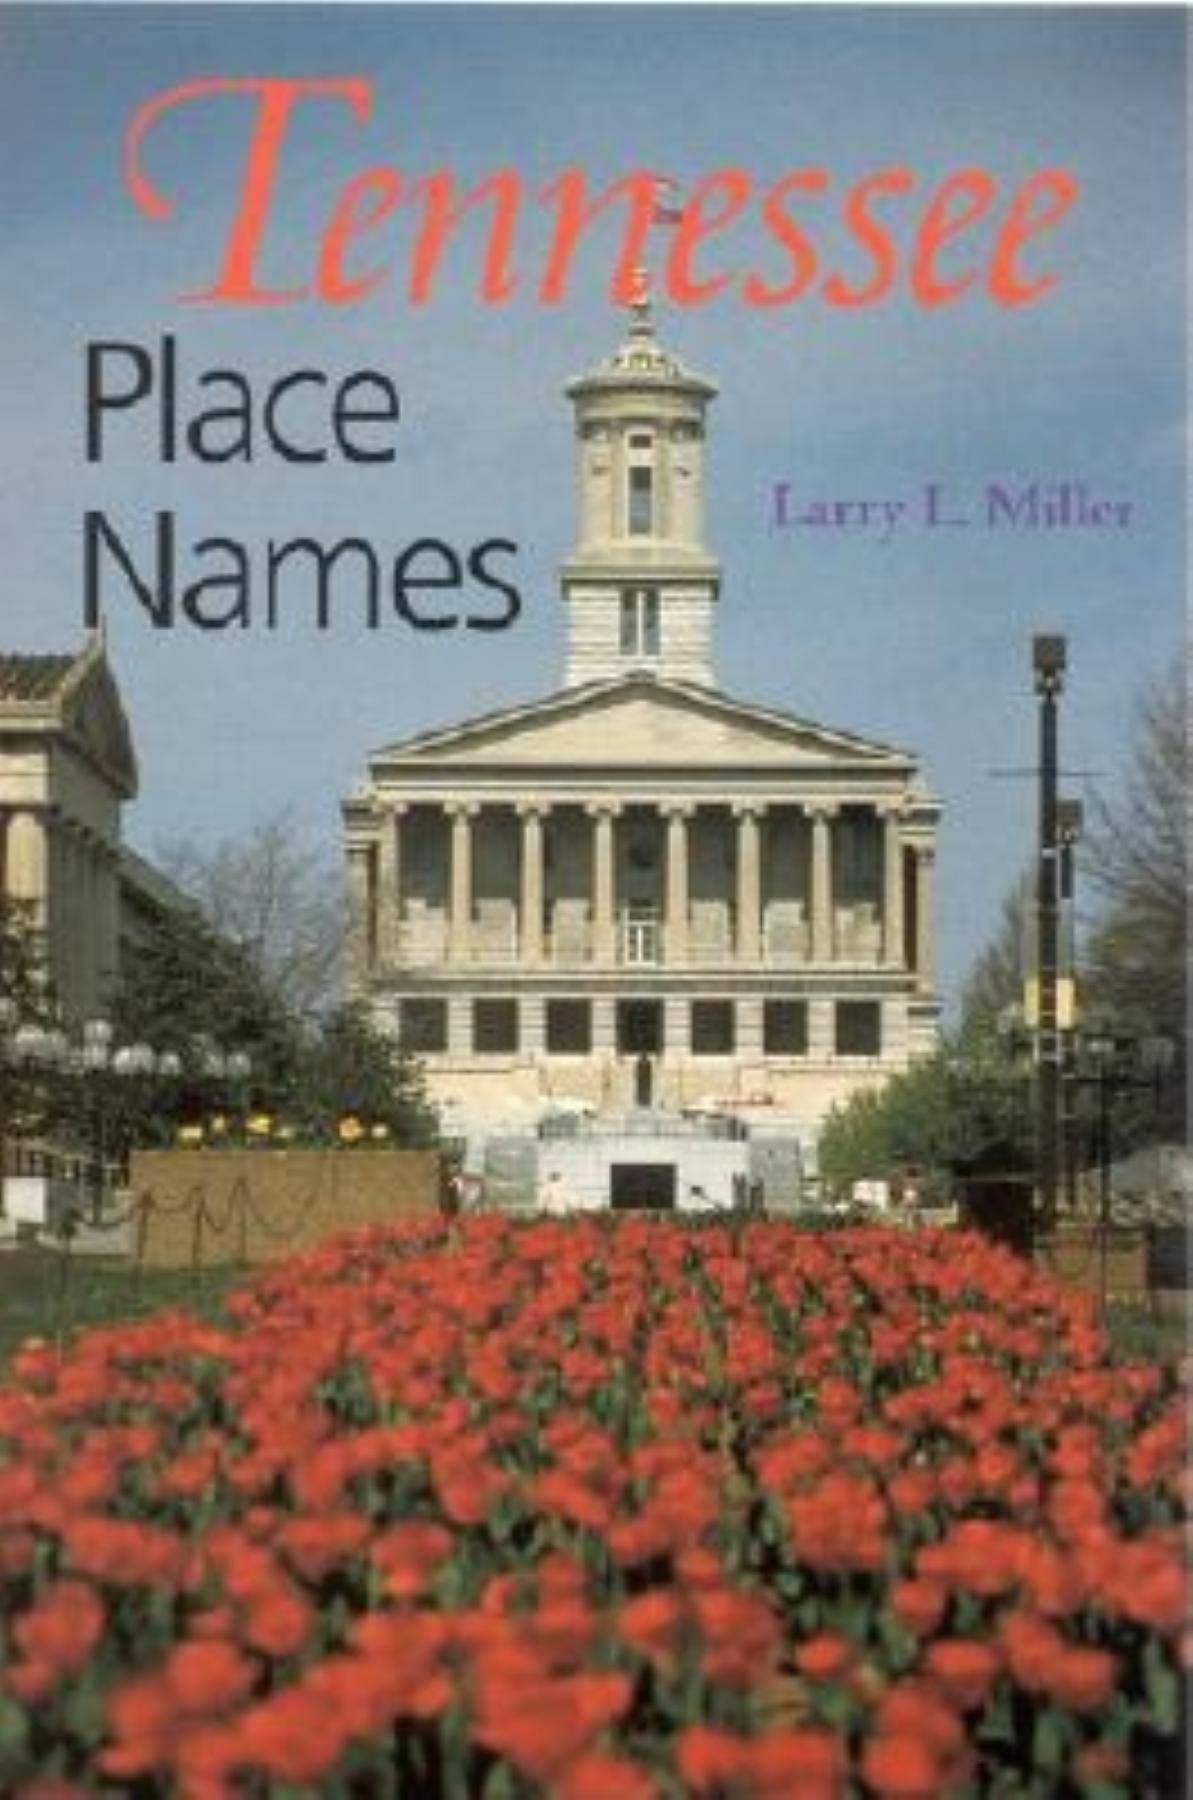 Tennessee Place Names